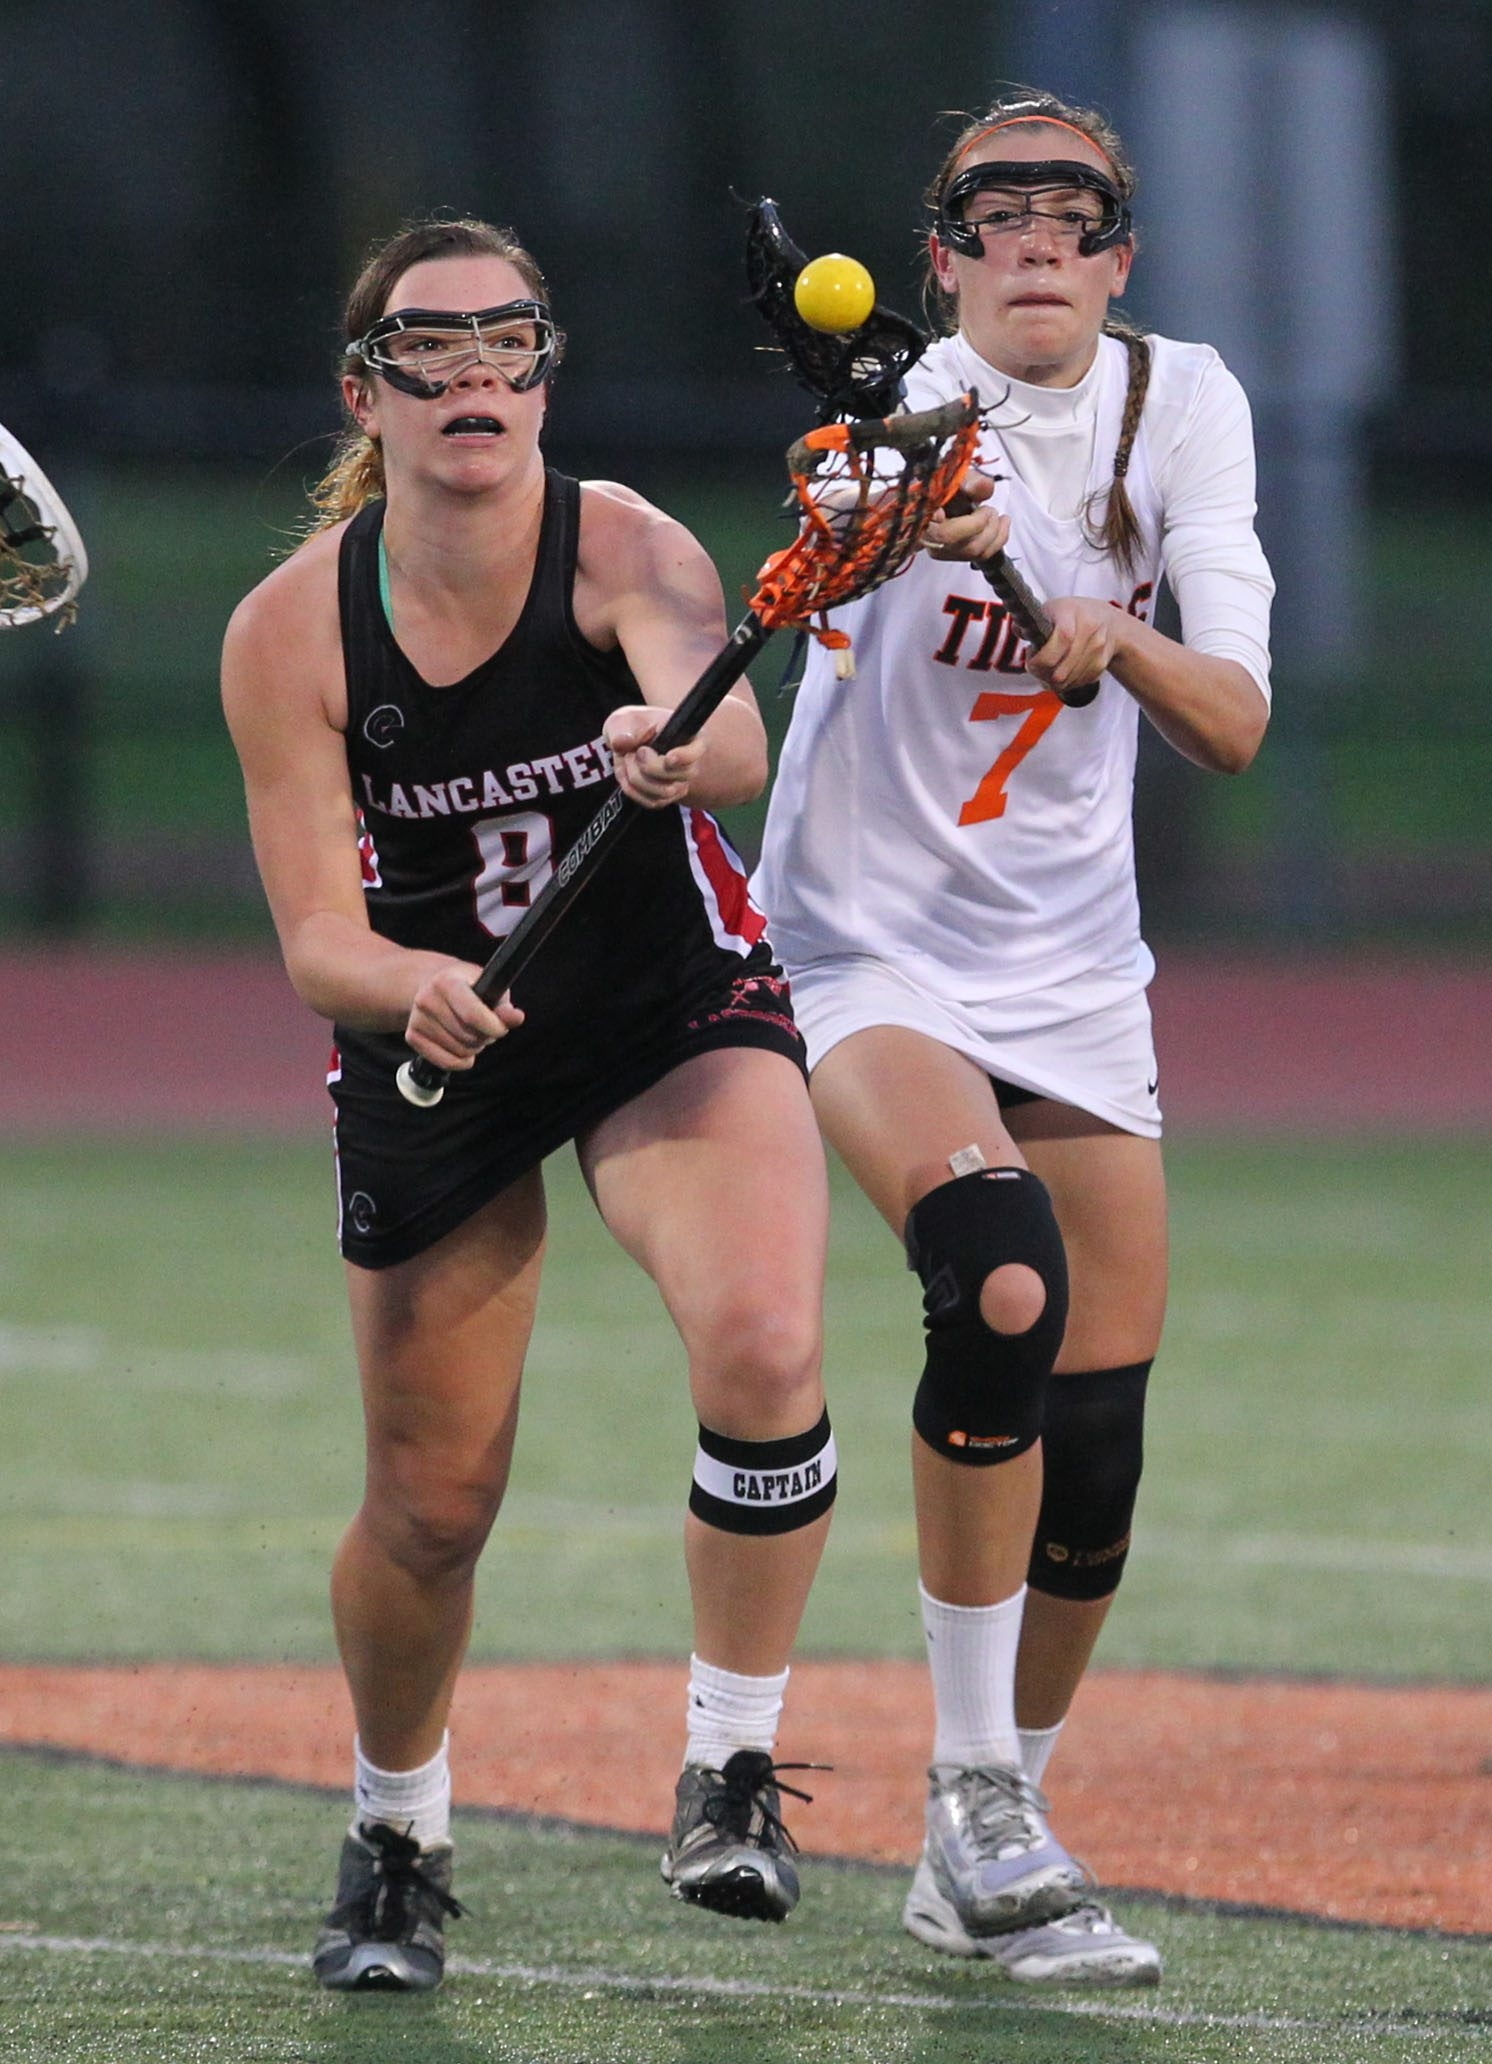 Grace Gabriel beats Amherst's McKenna Rushford to a loose ball during Lancaster's 9-7 win Thursday.